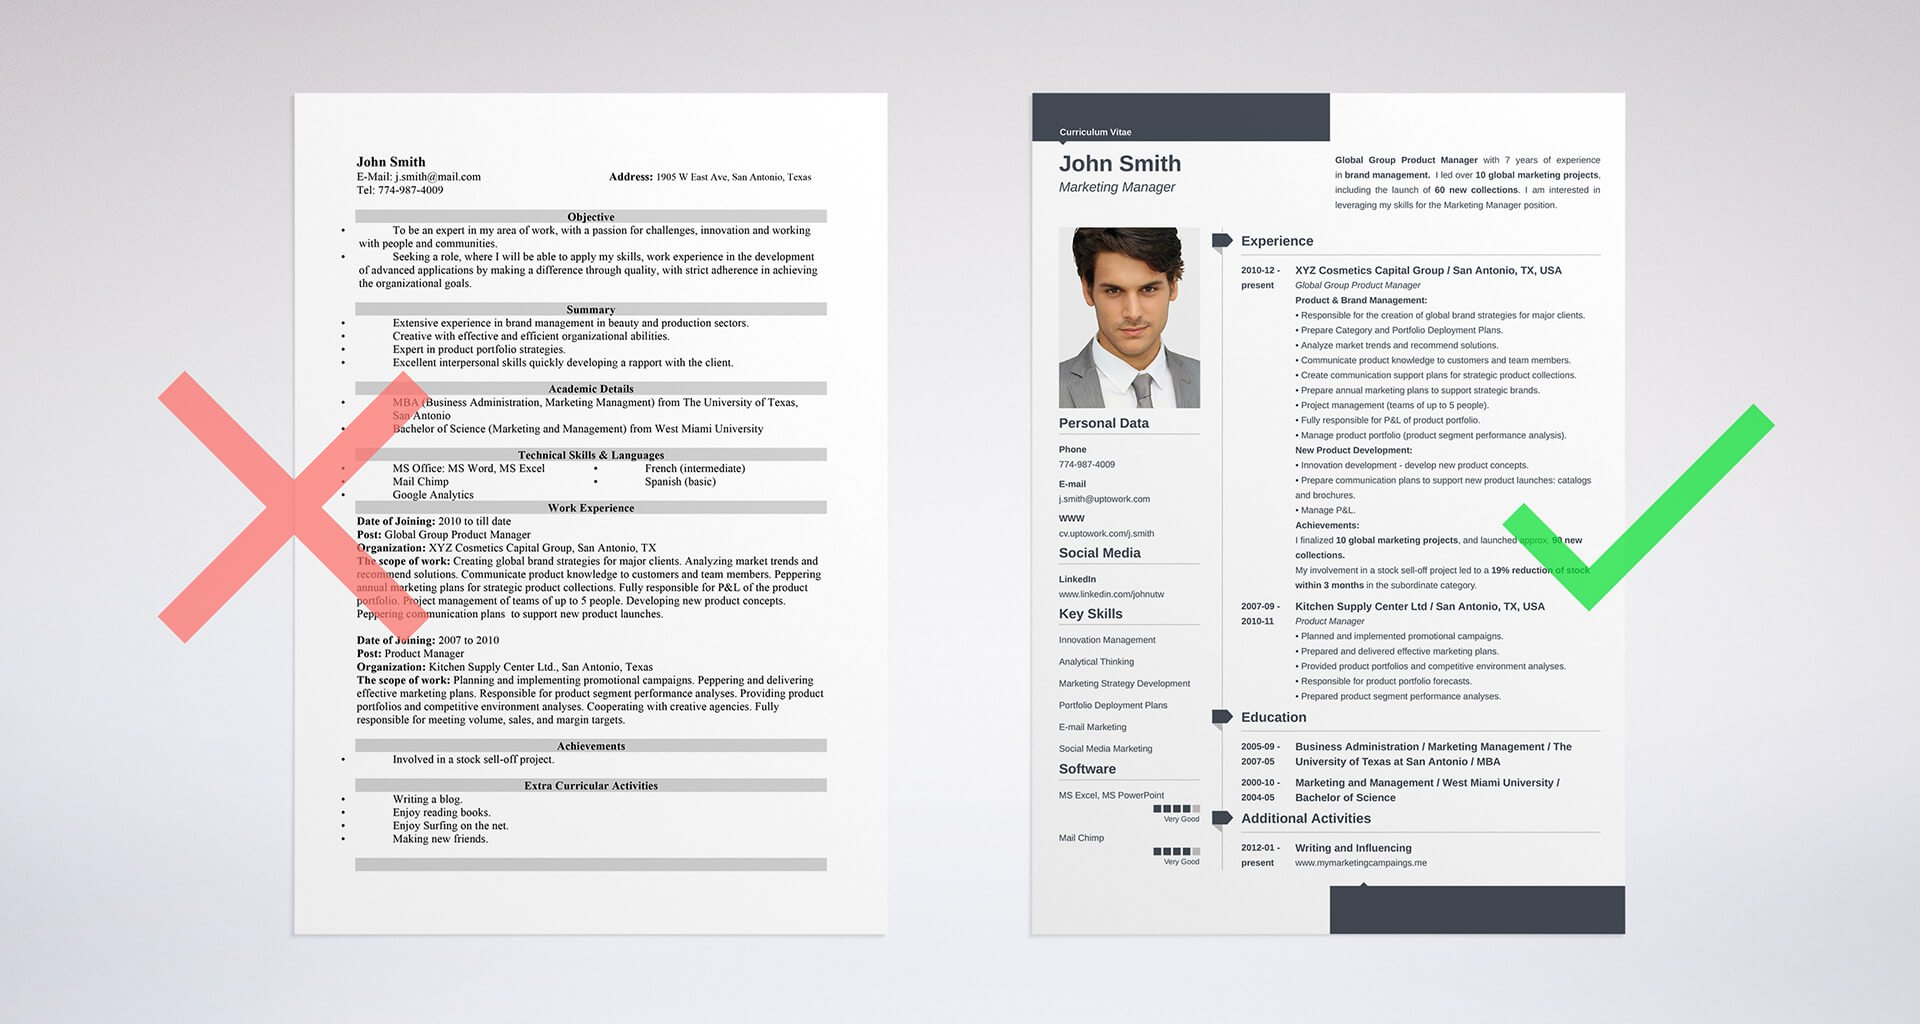 skills for resume best of examples all jobs and accomplishments dorothy templates Resume Skills And Accomplishments For Resume Examples